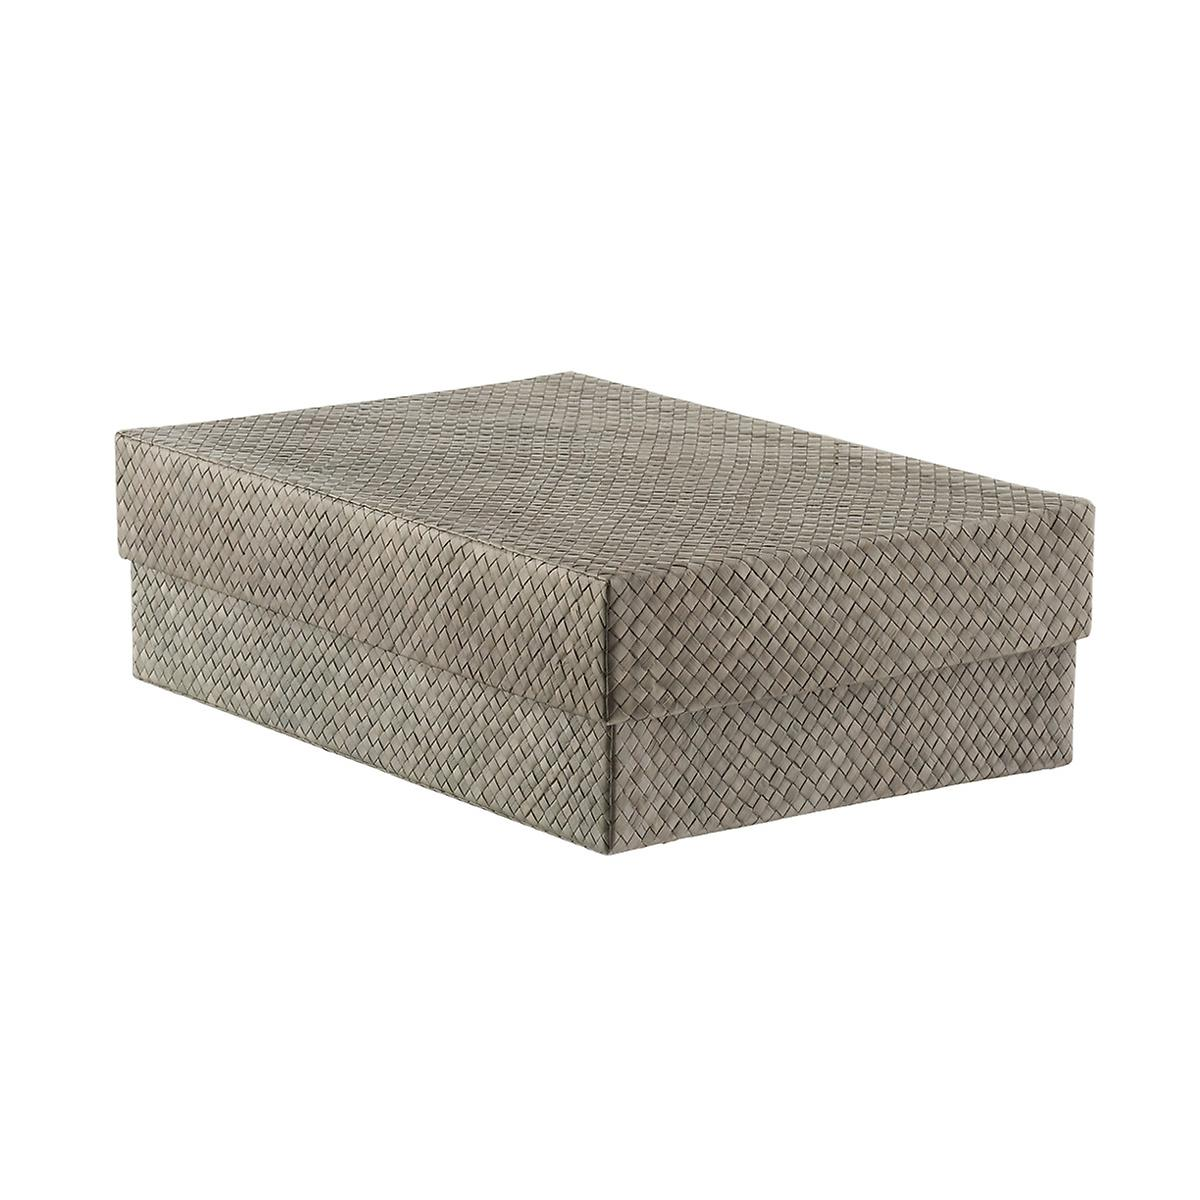 Grey Pandan Shirt Box